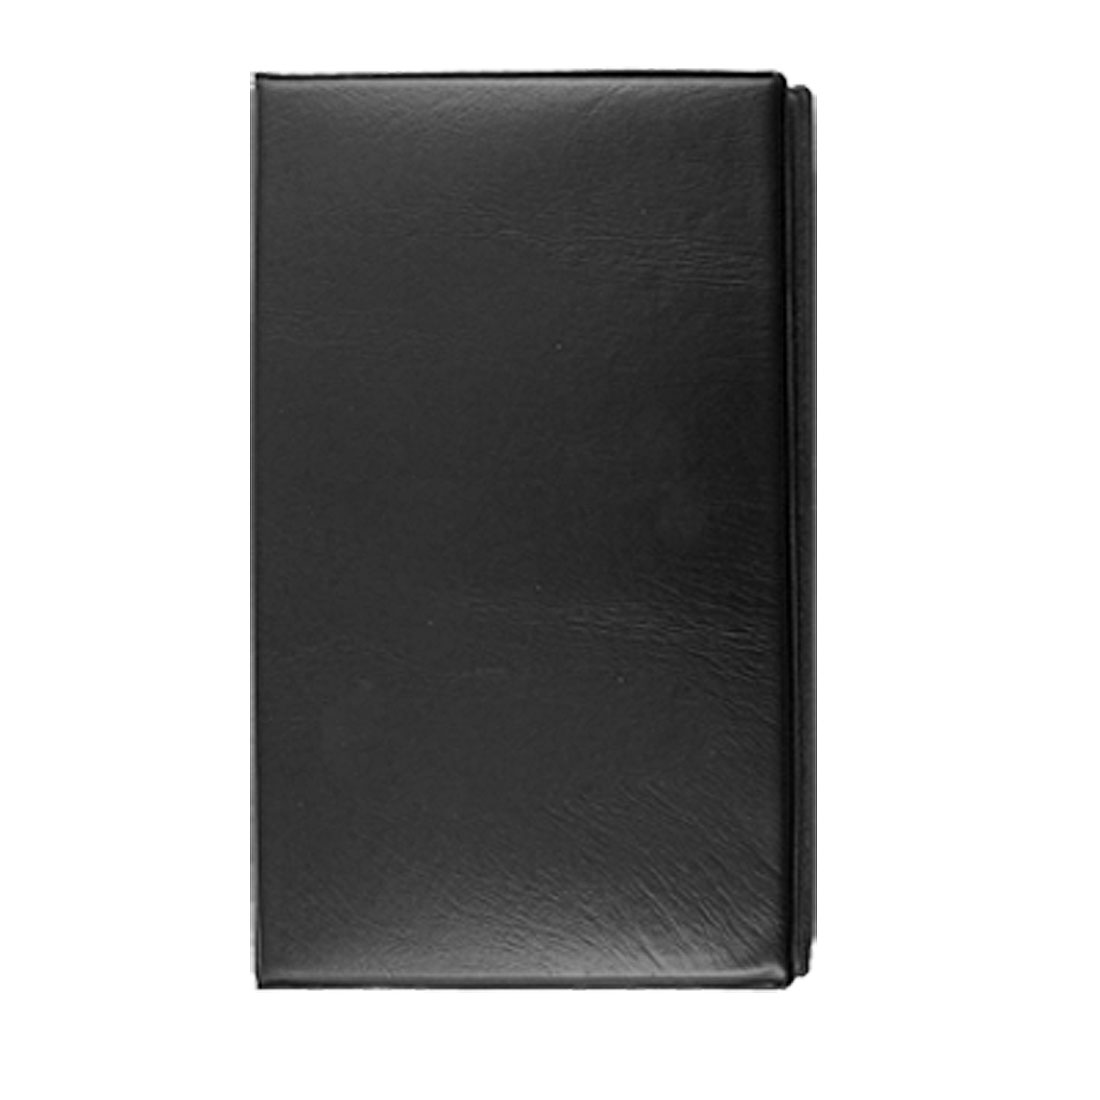 Notebook Style 144PCS Capacity Black Business Card Holder